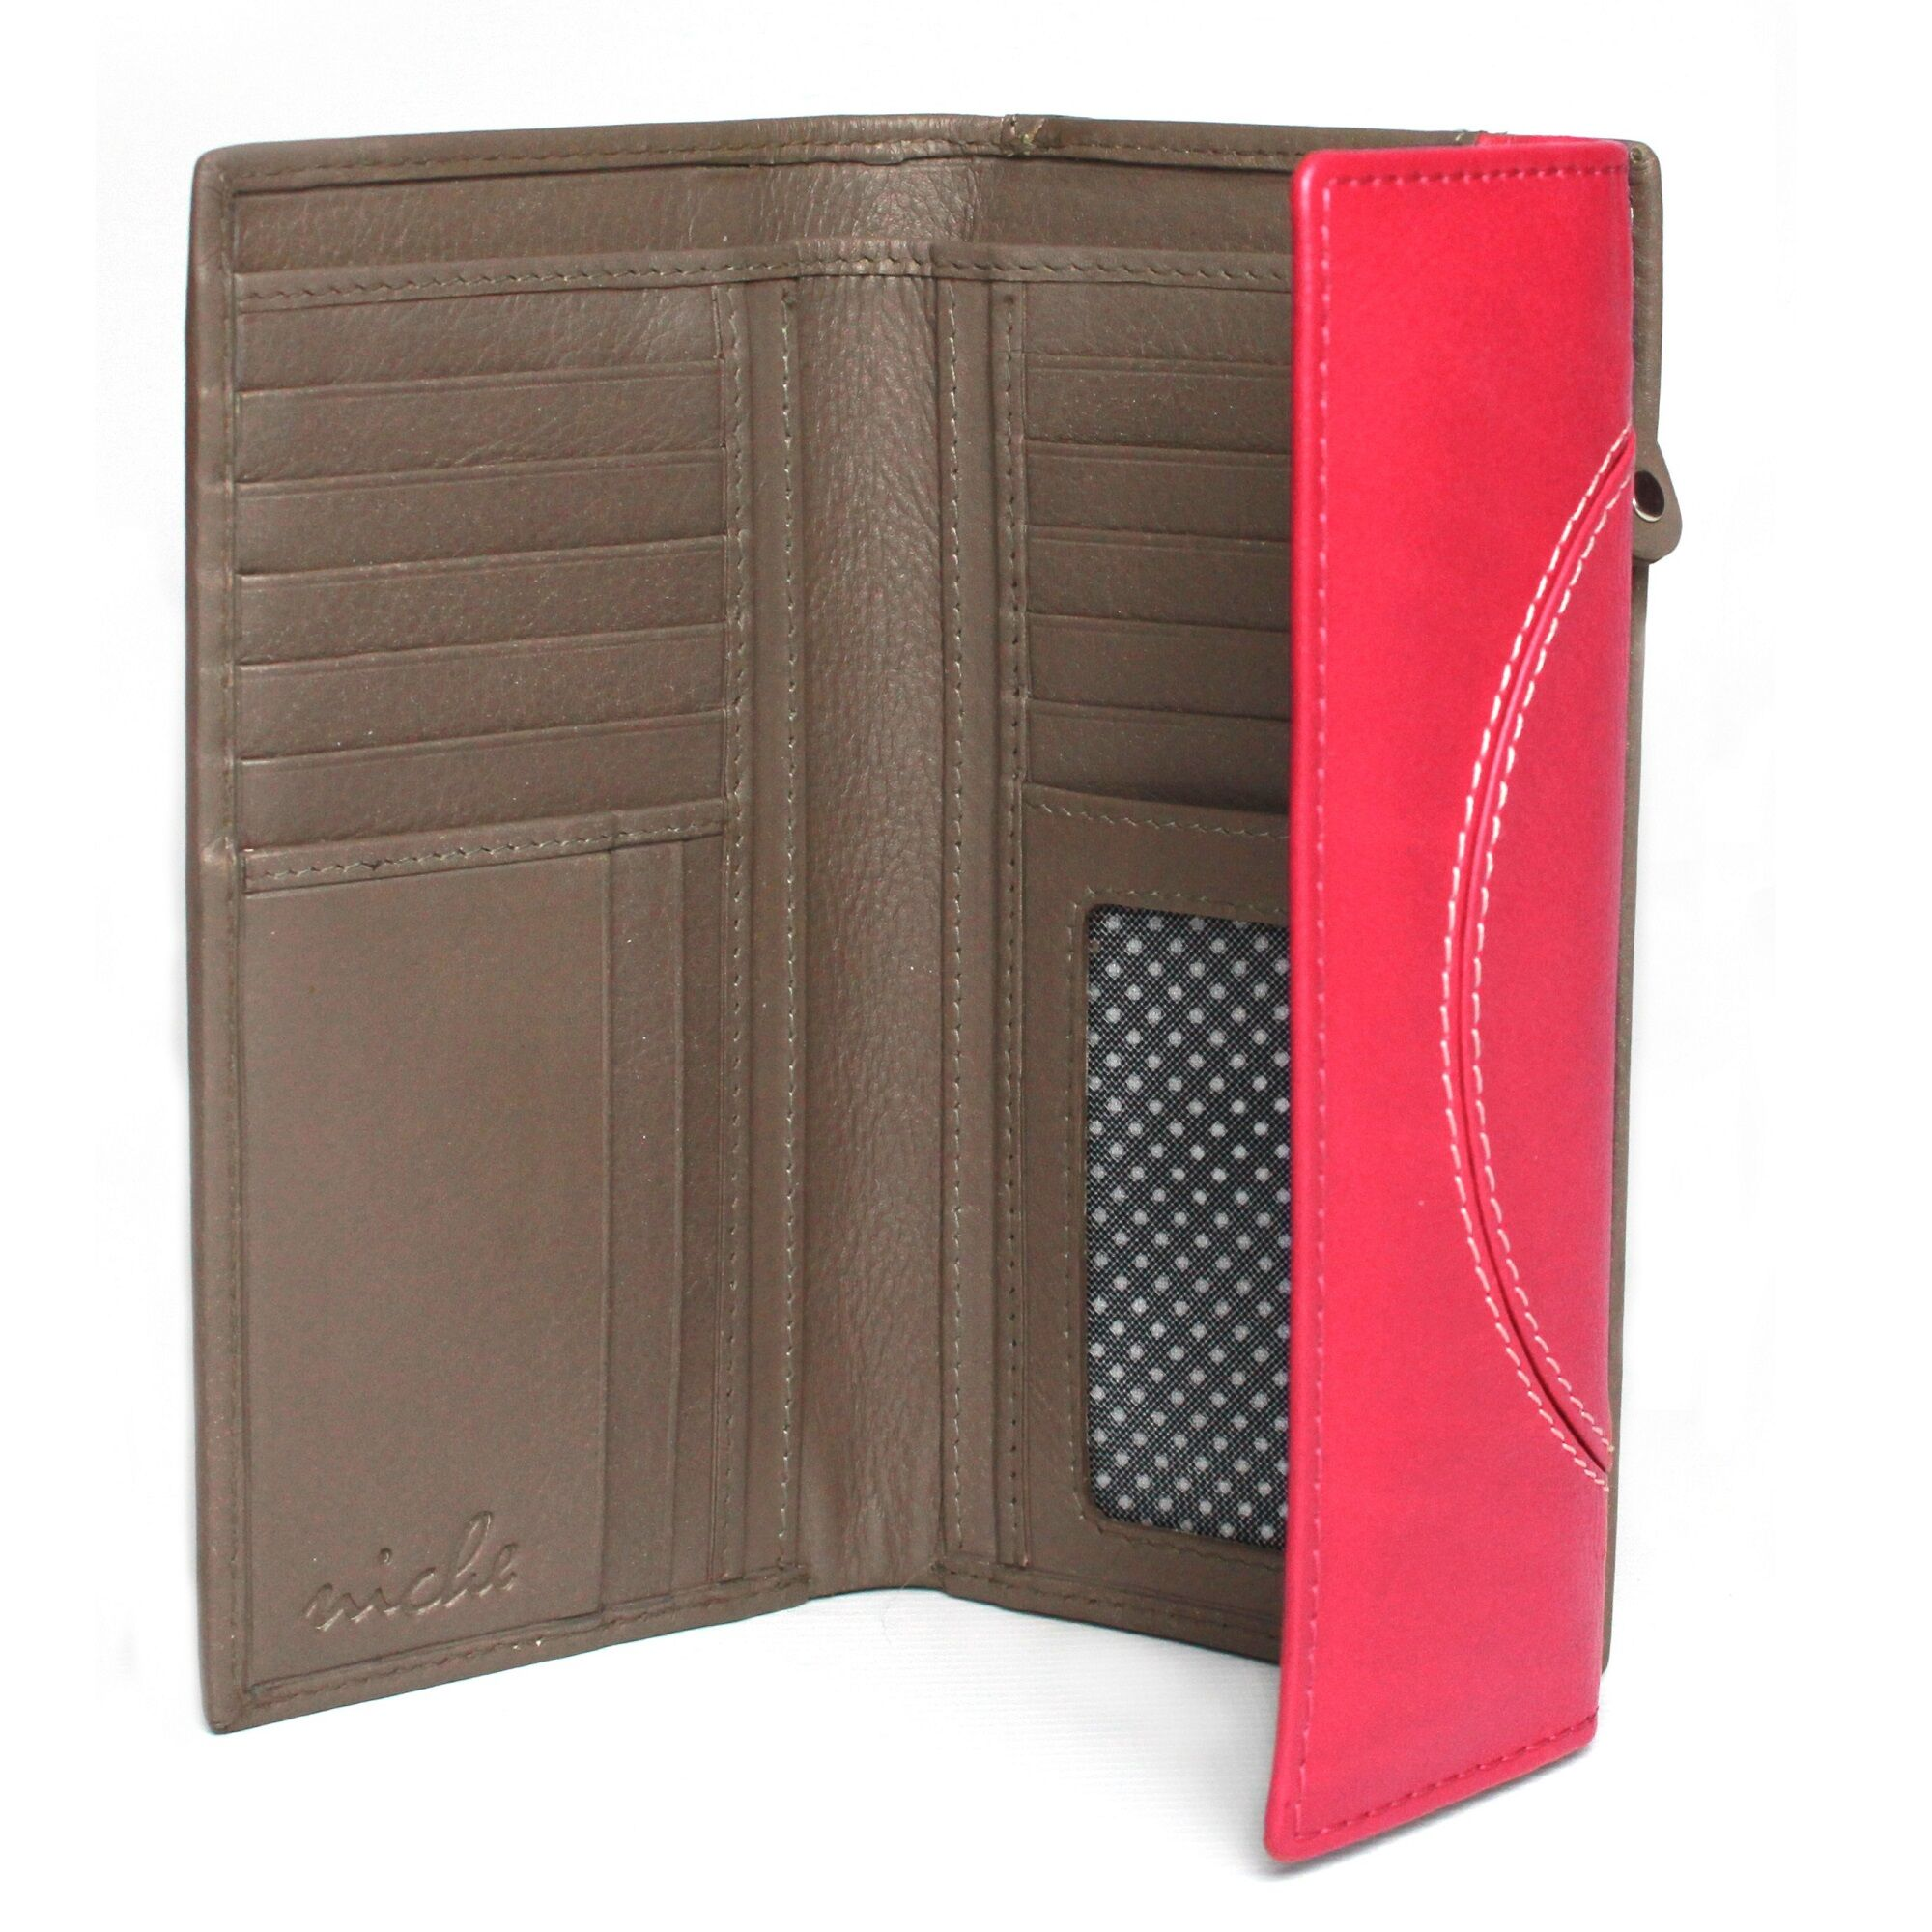 Eastern Counties Leather - Portefeuille Layla - Femme (Corail/ Taupe) - UTEL218